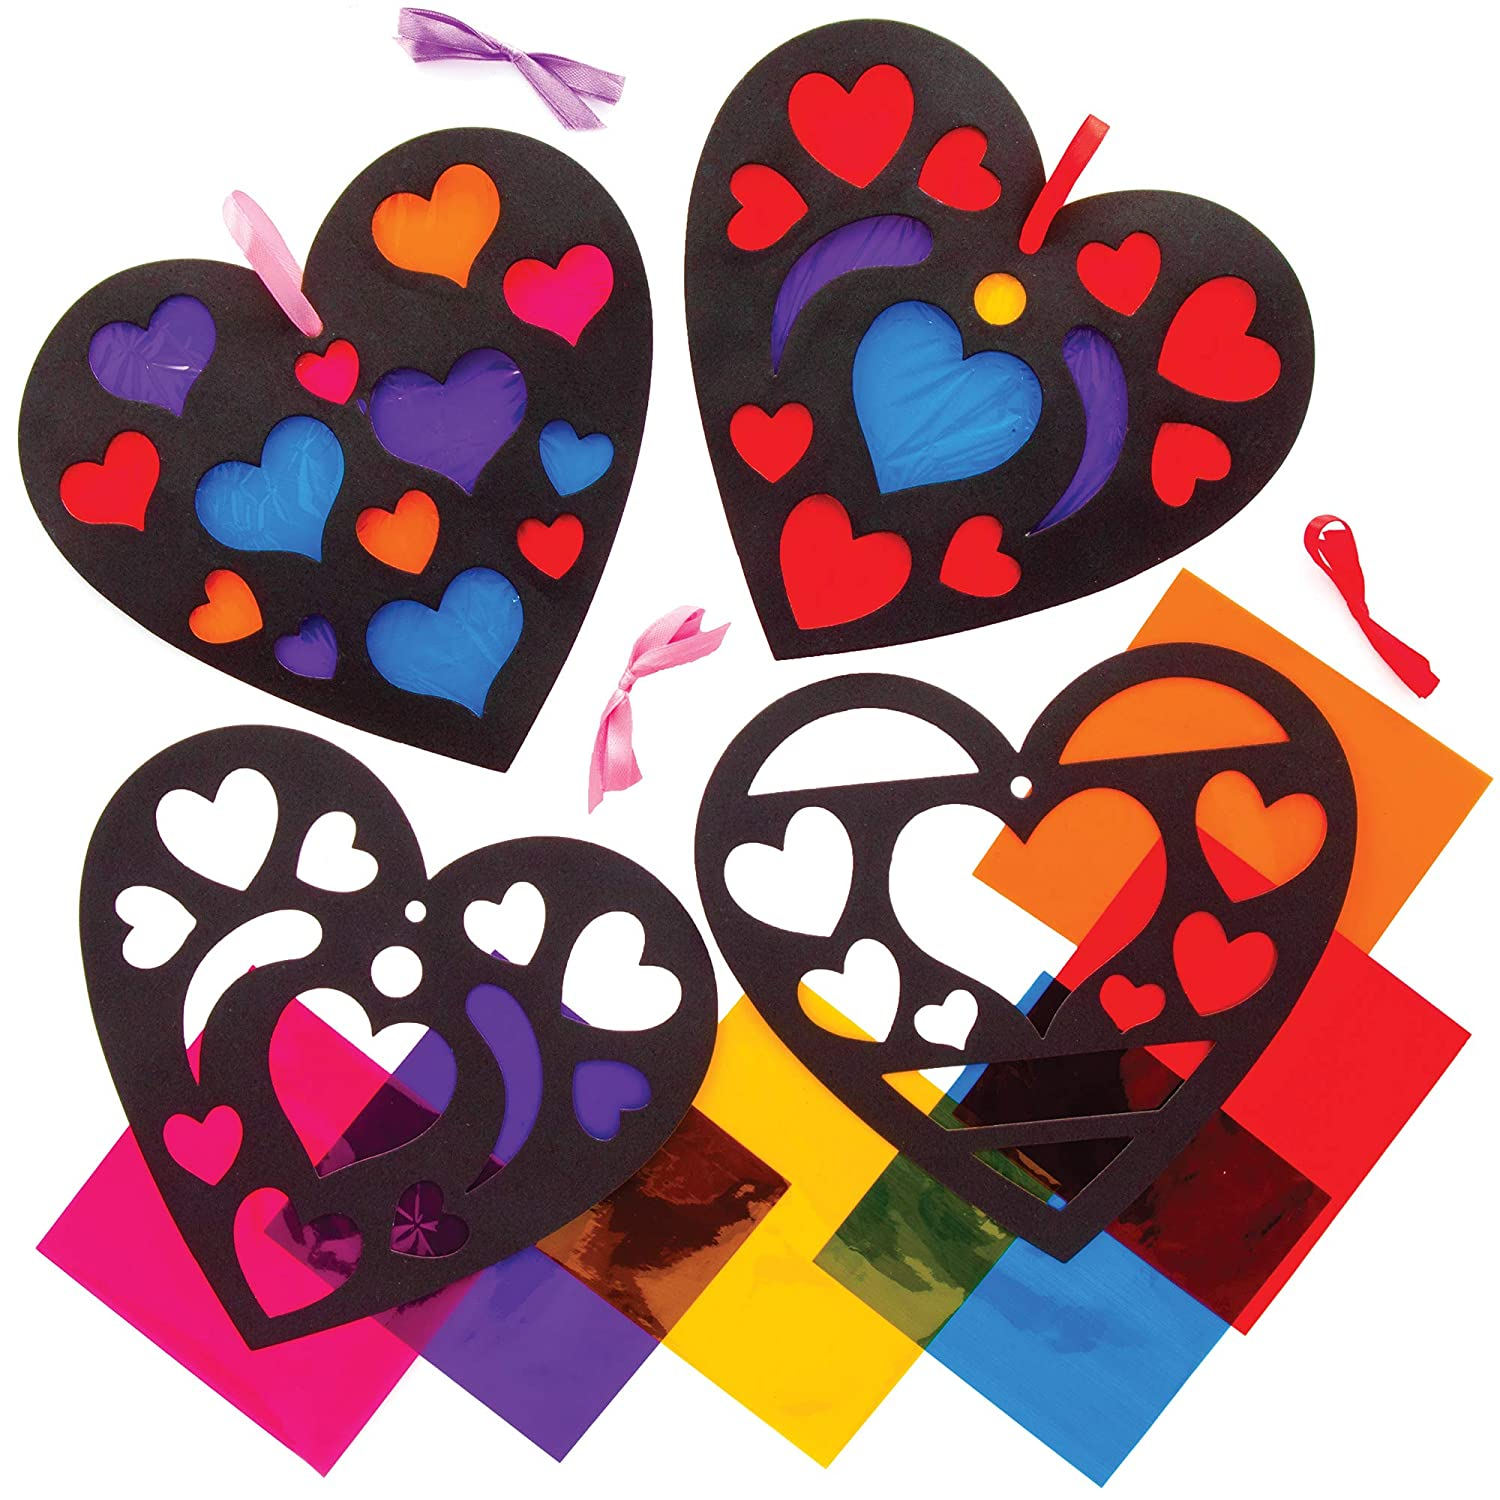 Baker Ross AT551 Heart Stained Glass Effect Decoration Kits - Pack of 6, Creative Valentines Day Art and Craft Supplies for Kids to Make and Decorate